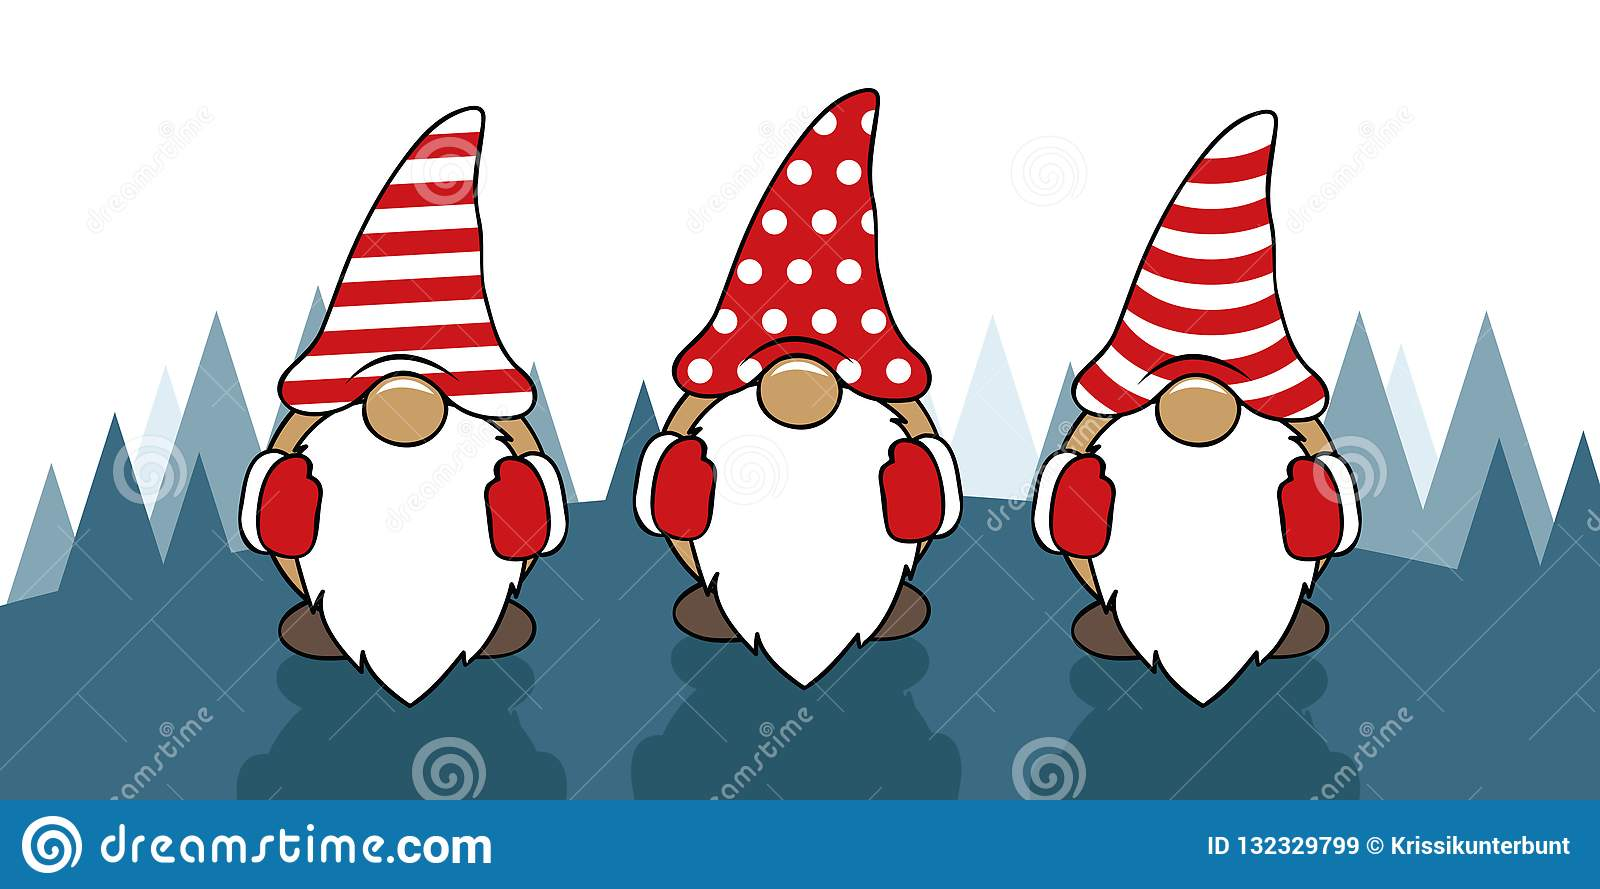 Christmas Gnomes Images.Three Cute Christmas Gnomes With Funny Caps Stock Vector